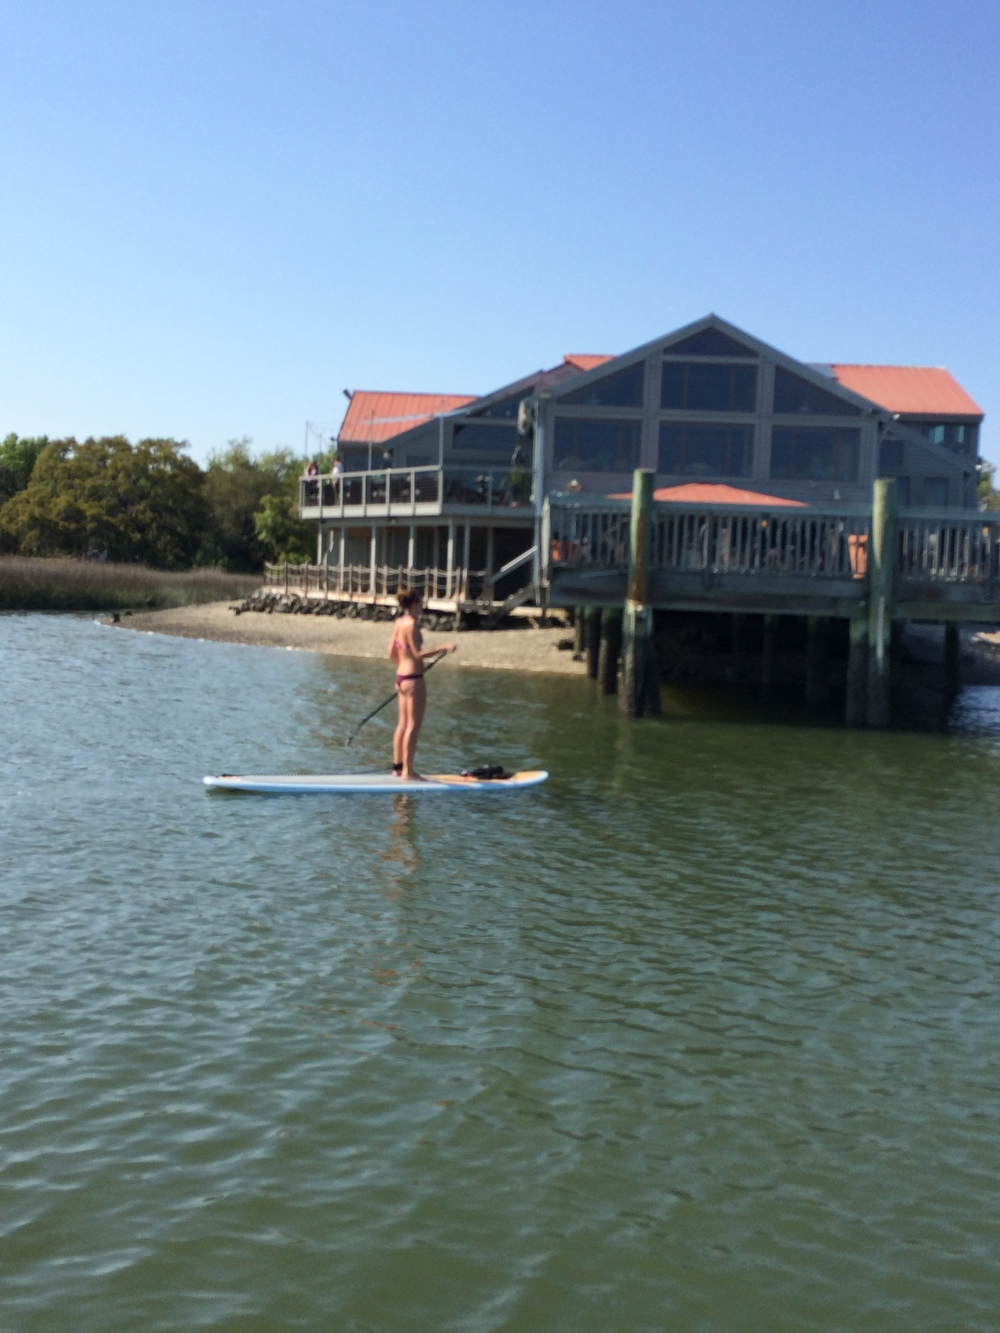 11' Balance by JB Boards...Old Oyster Factory